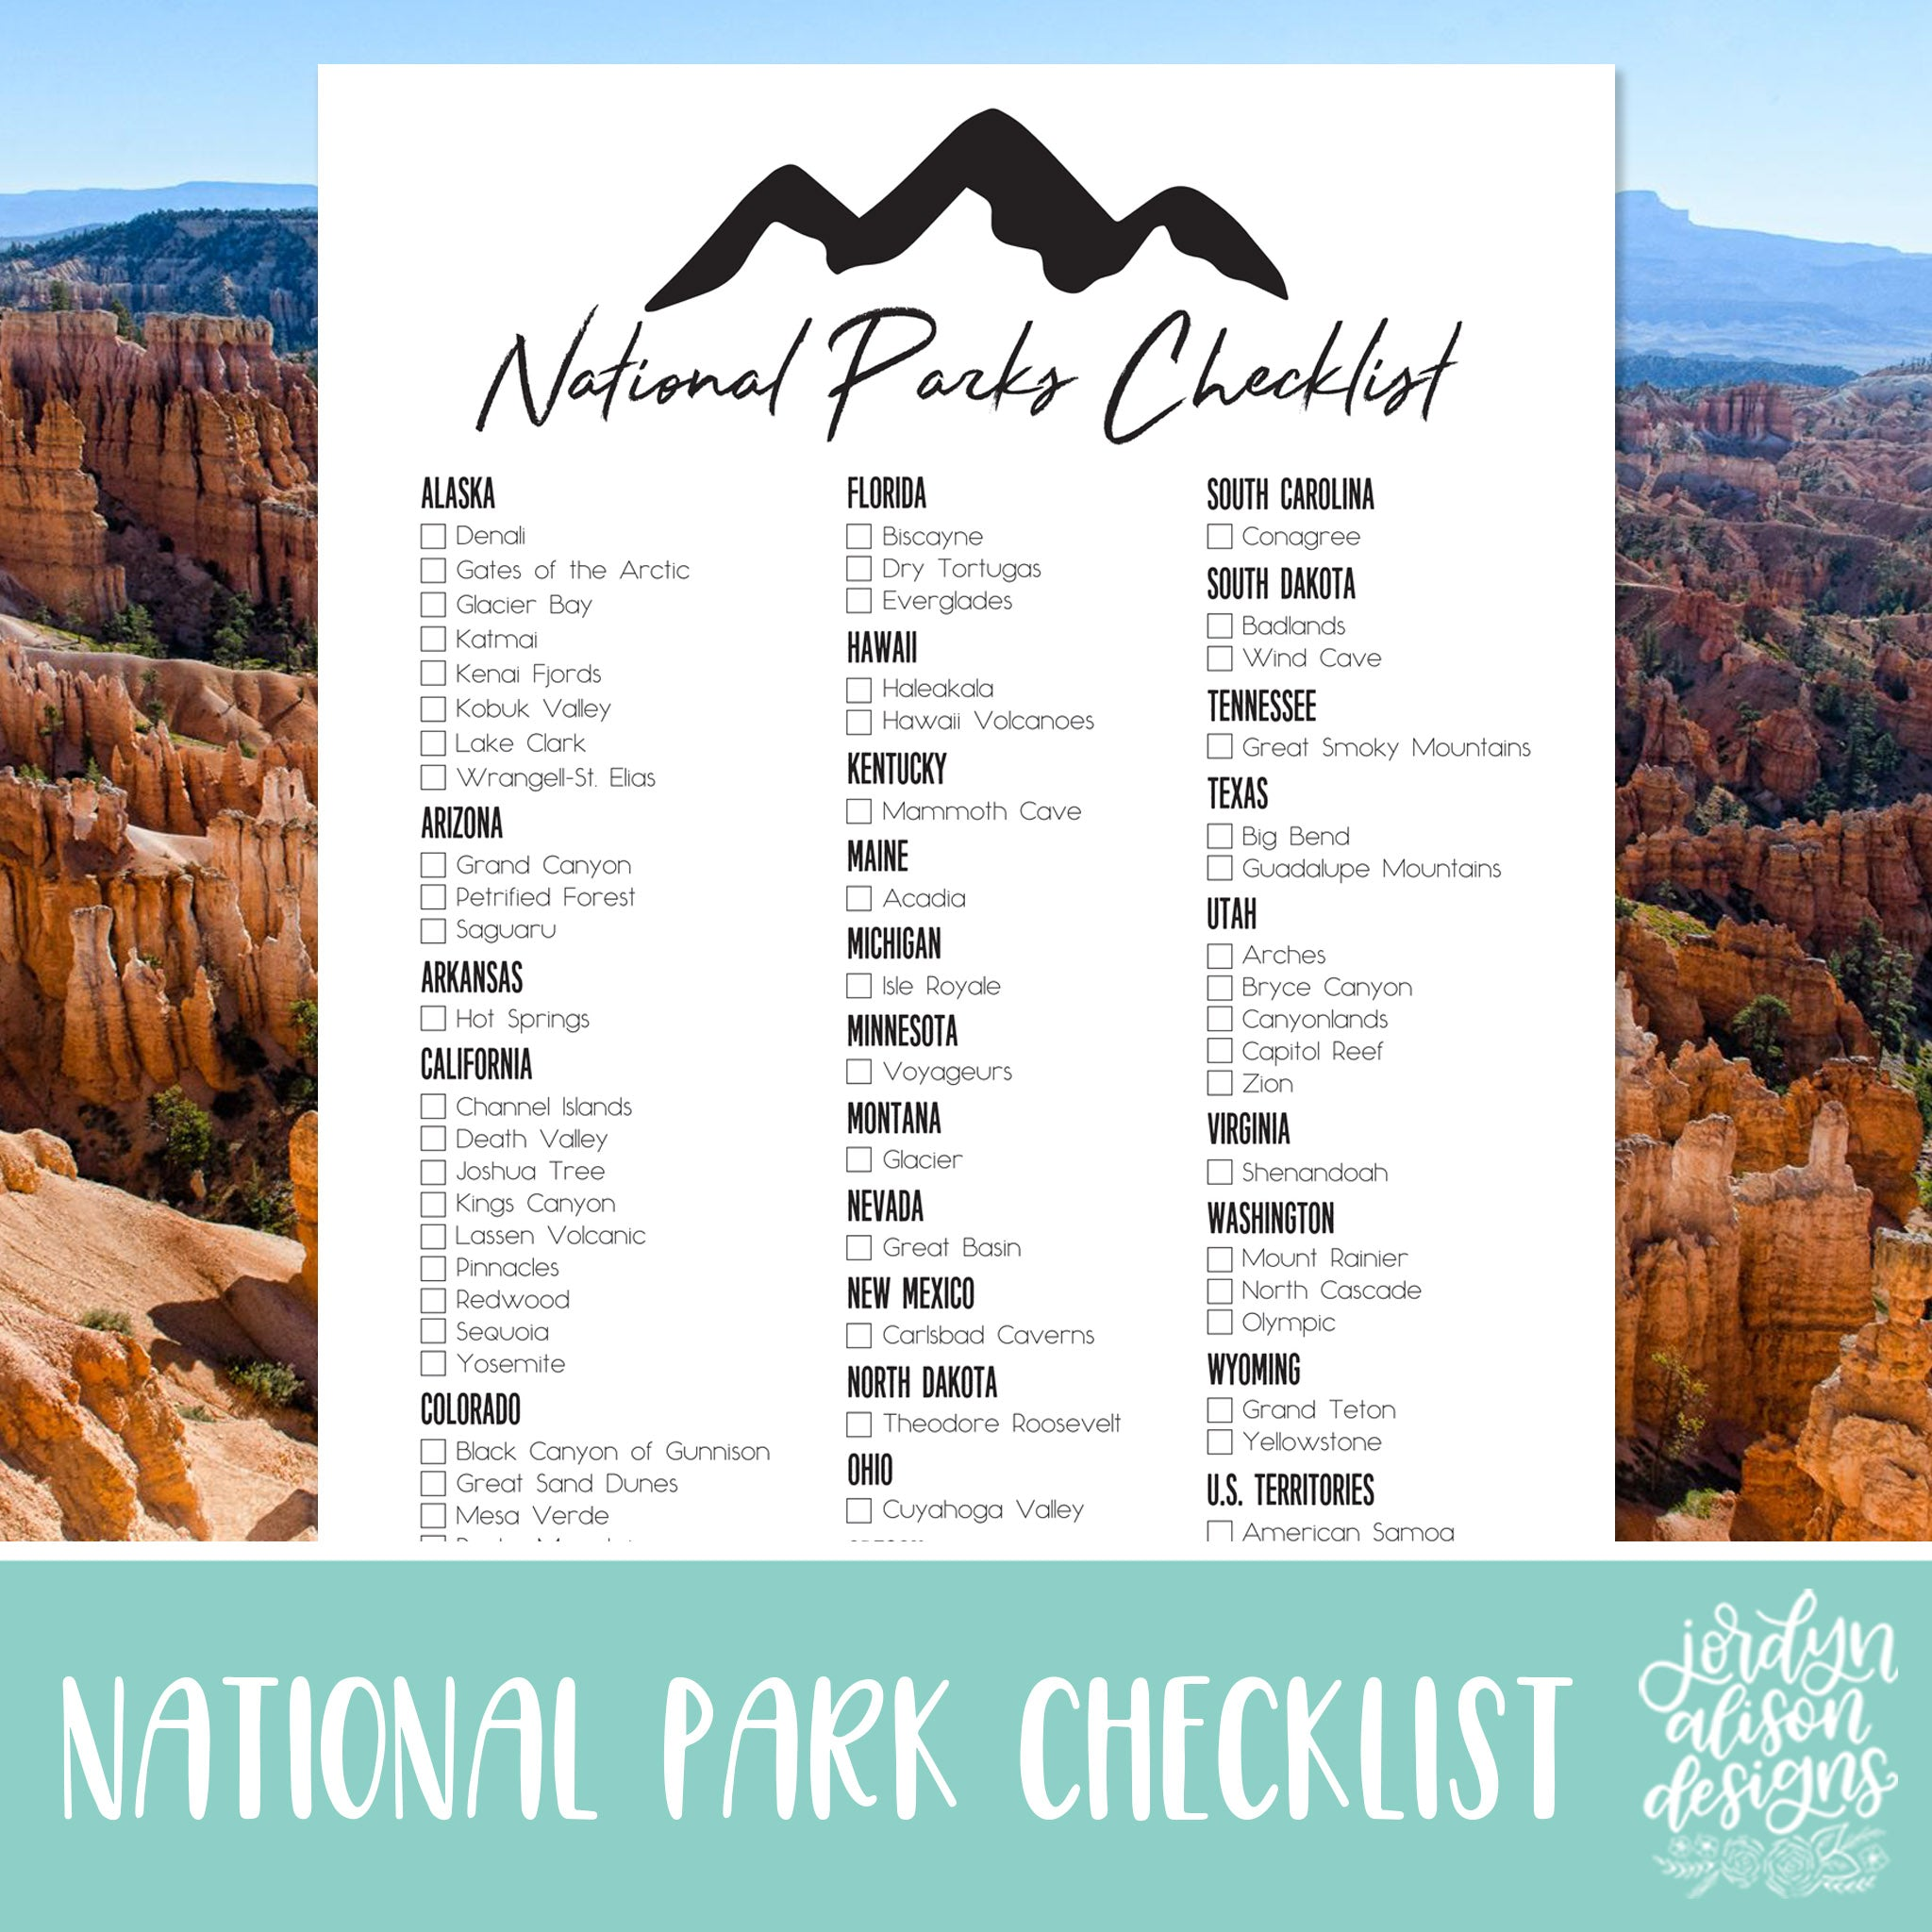 image regarding Printable National Park Checklist known as Countrywide Park Listing JordynAlisonDesigns